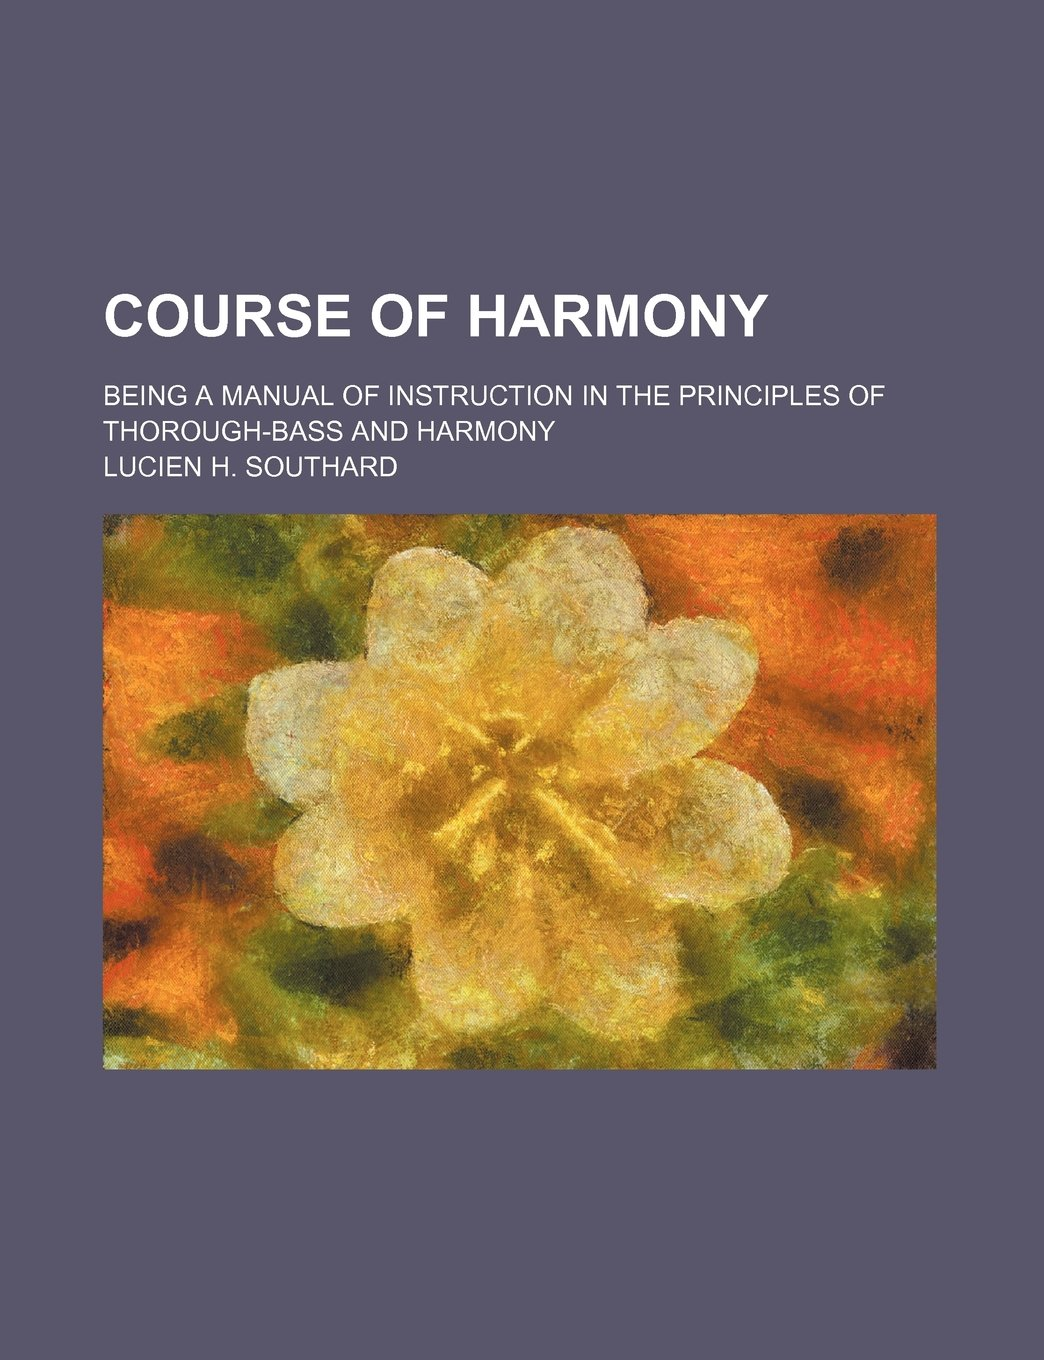 Course of harmony; being a manual of instruction in the principles of  thorough-bass and harmony: Lucien H. Southard: 9781231745489: Amazon.com:  Books